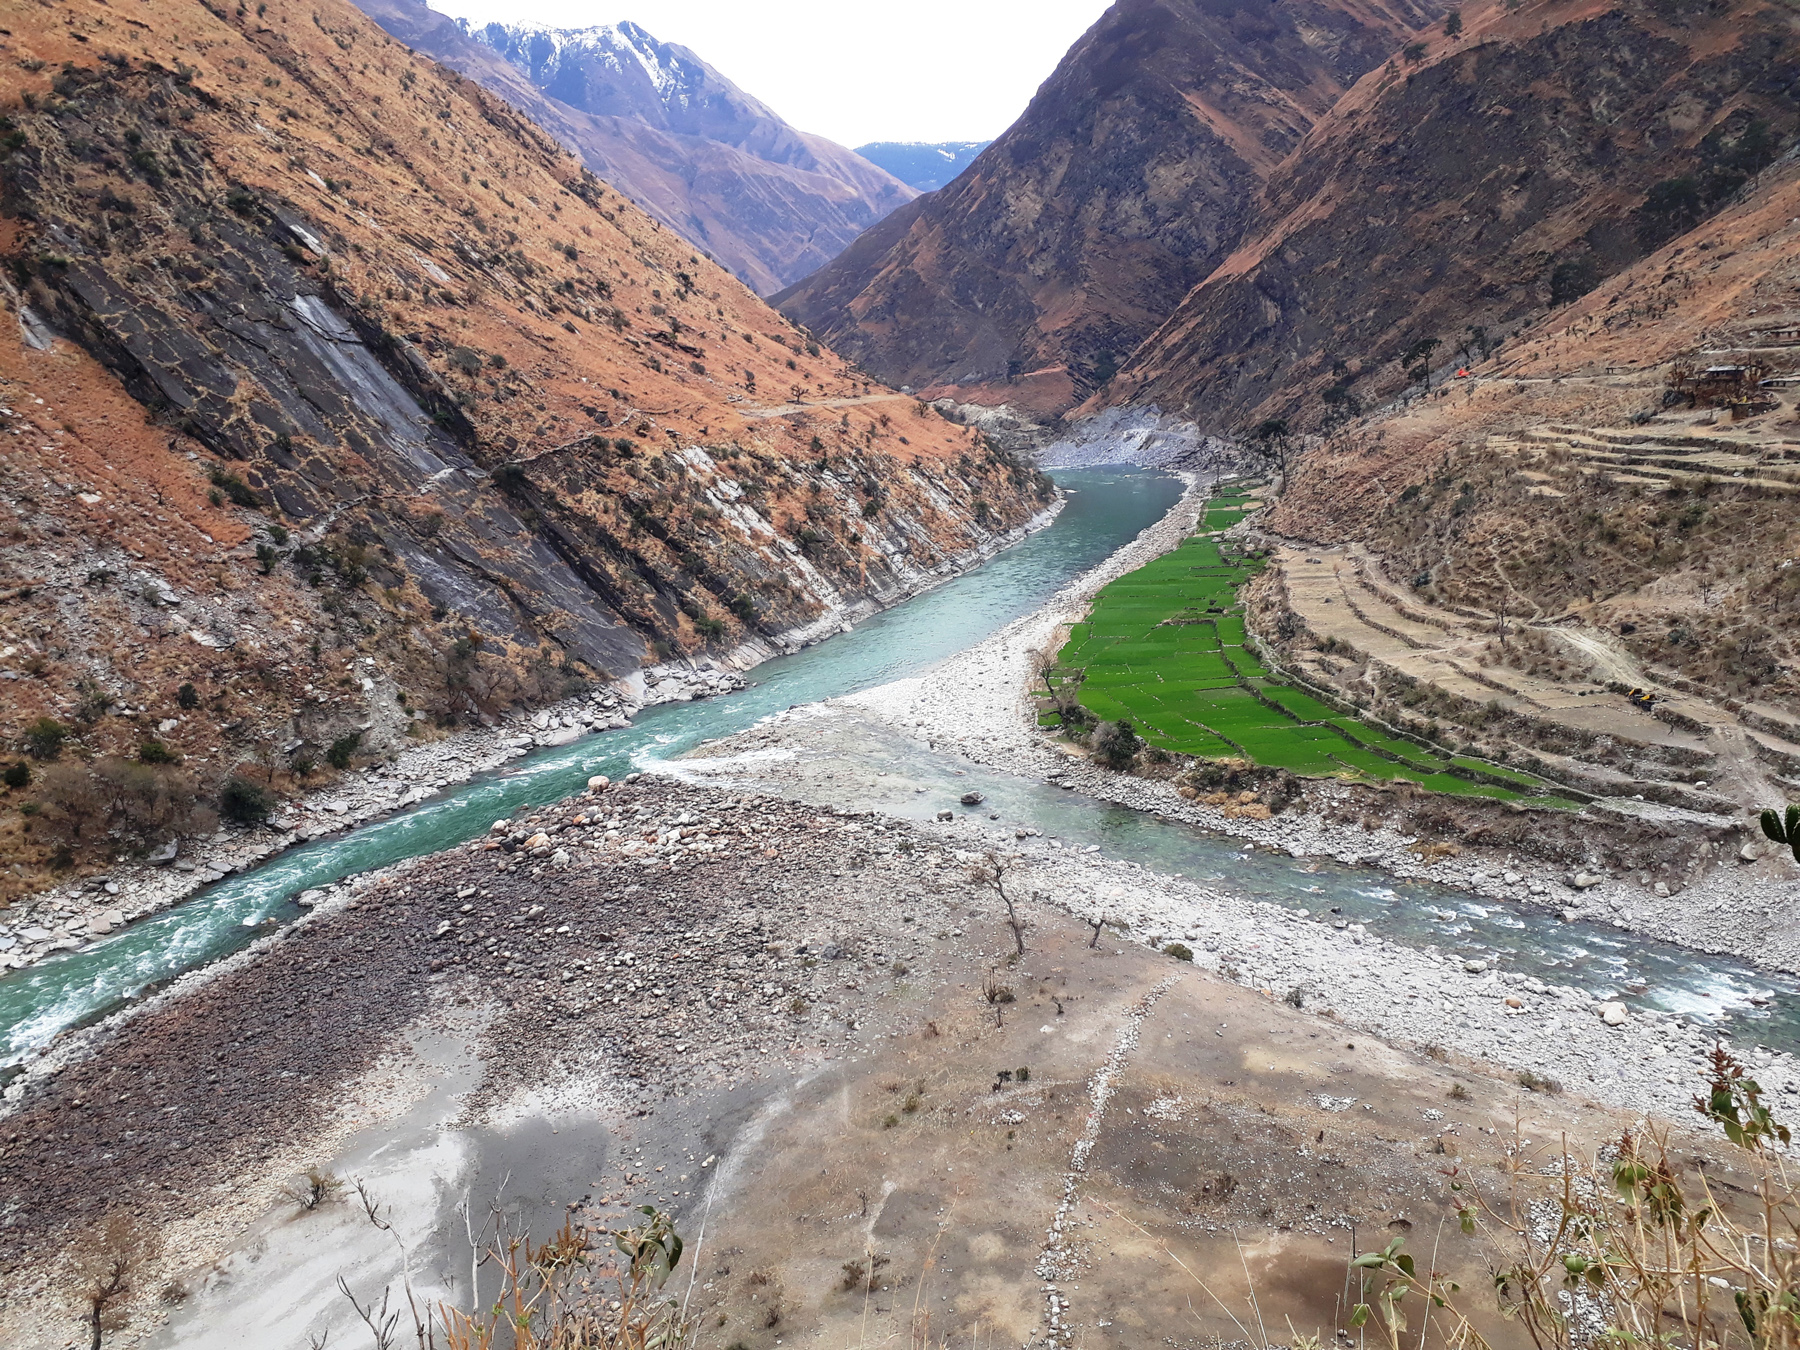 The longest river of Nepal- Karnali River flows through the scenic Kawadi Region, which lies on the axis of districts of Bajura, Humla and Mugu in western Nepal. Photo:RSS